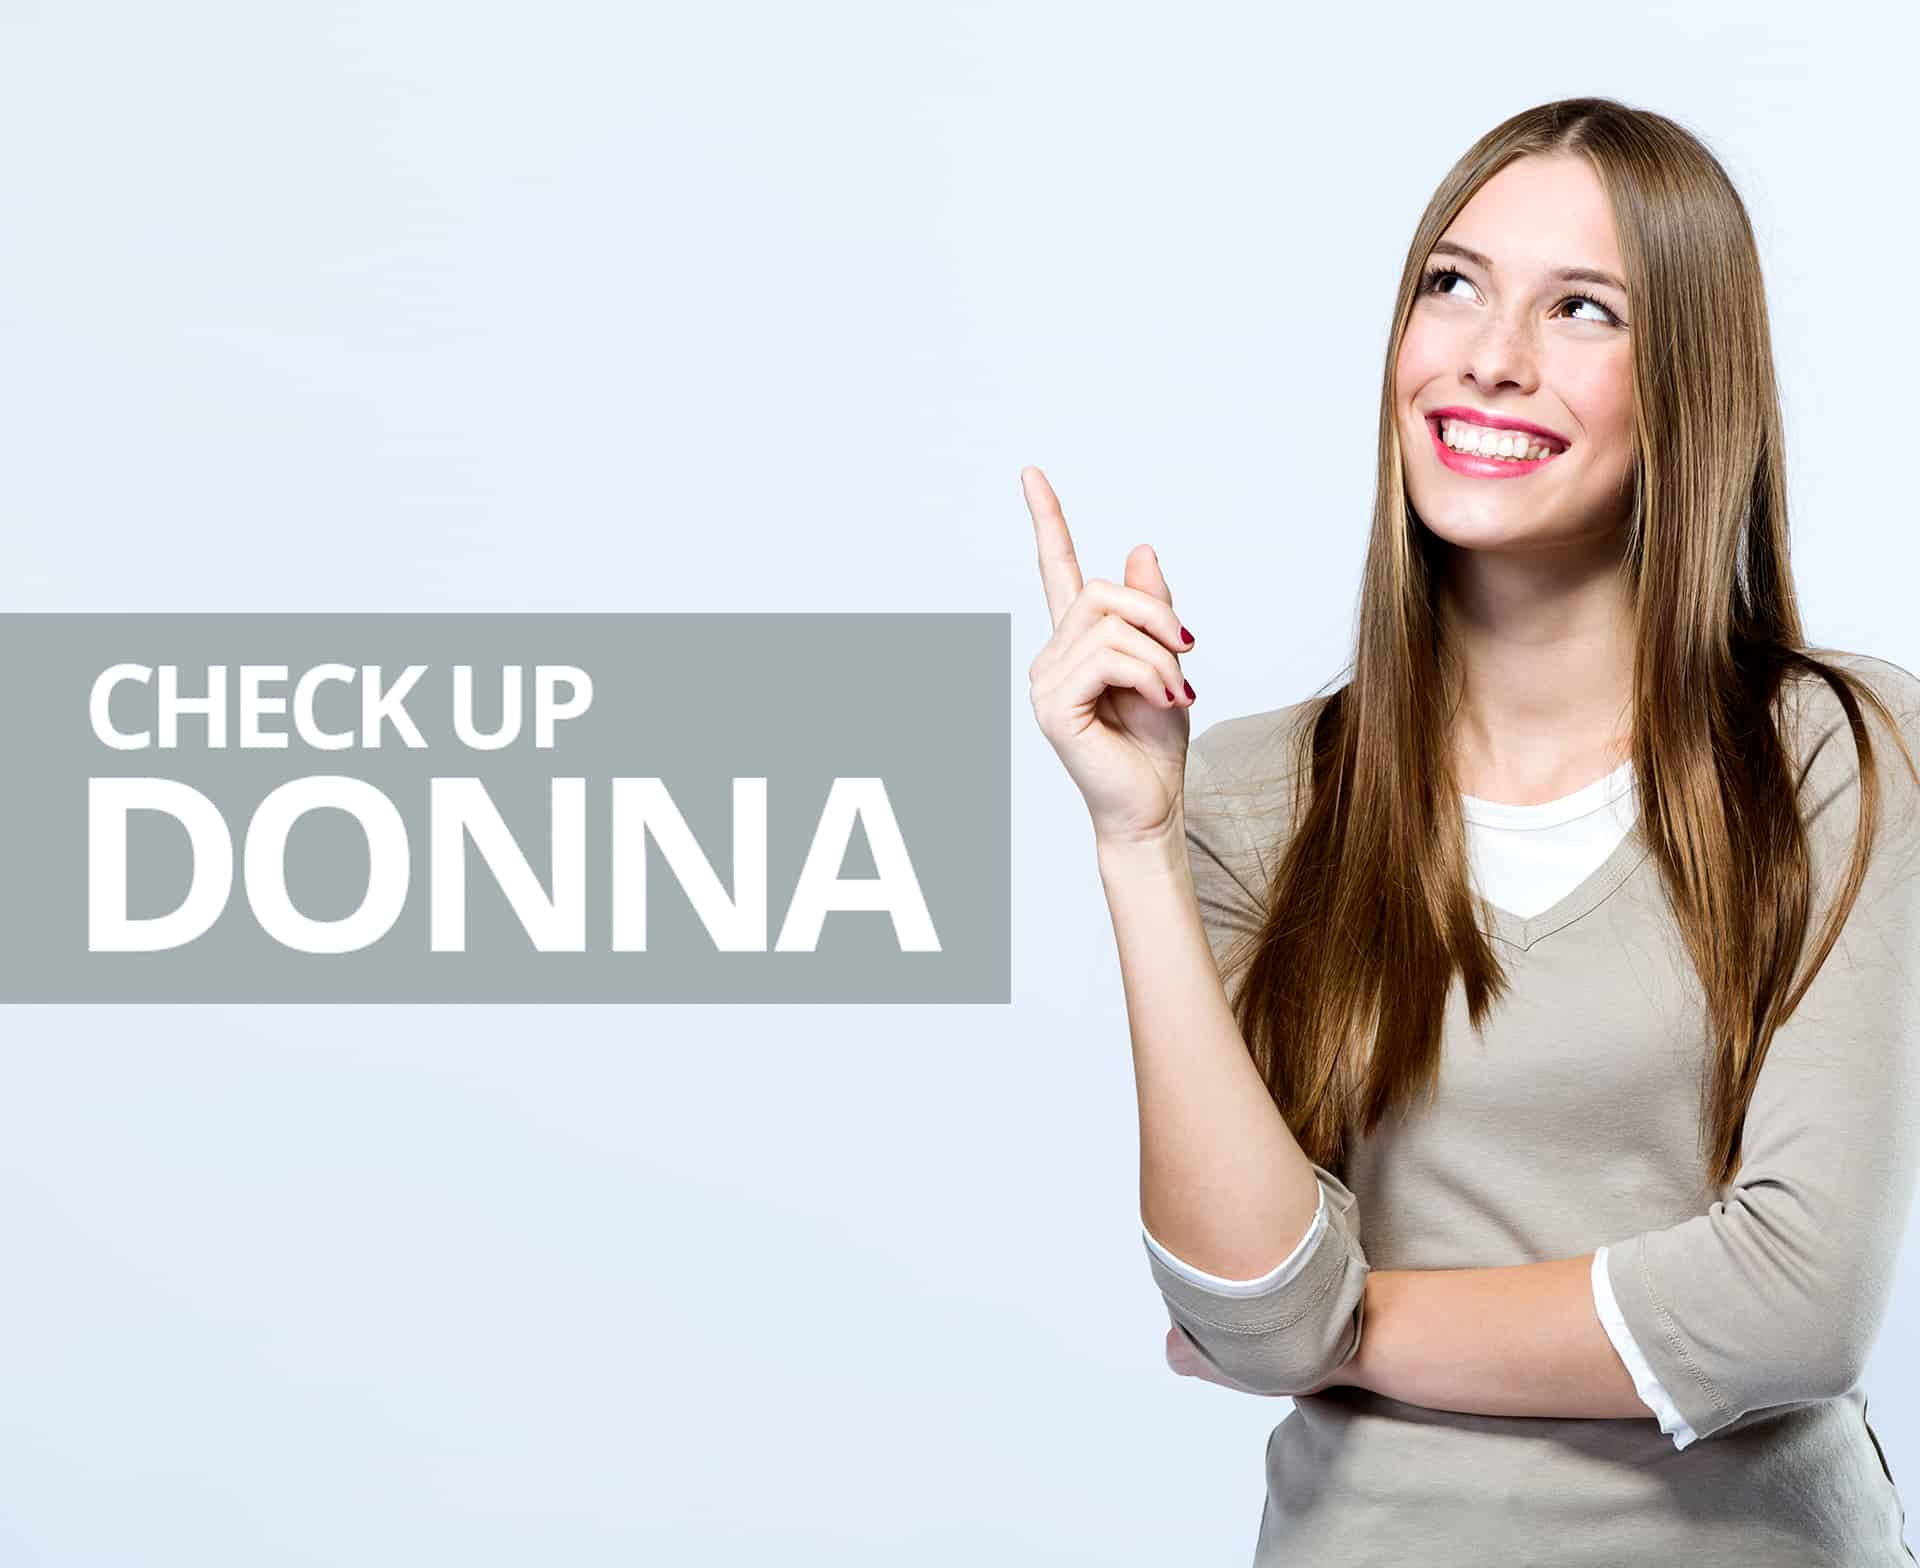 donna img